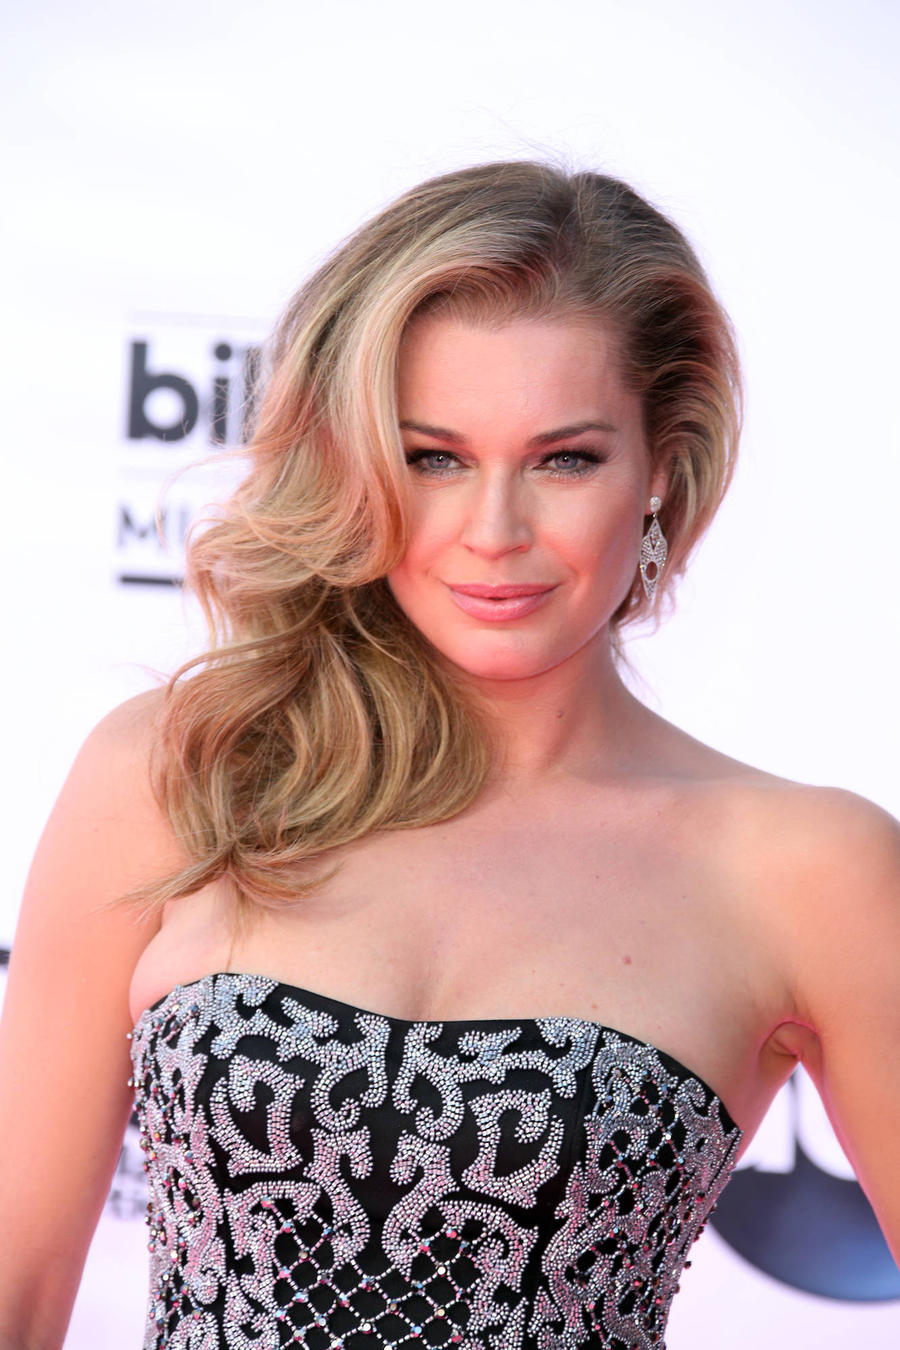 Rebecca Romijn Backs Down On 'Supermodel' Remarks Again